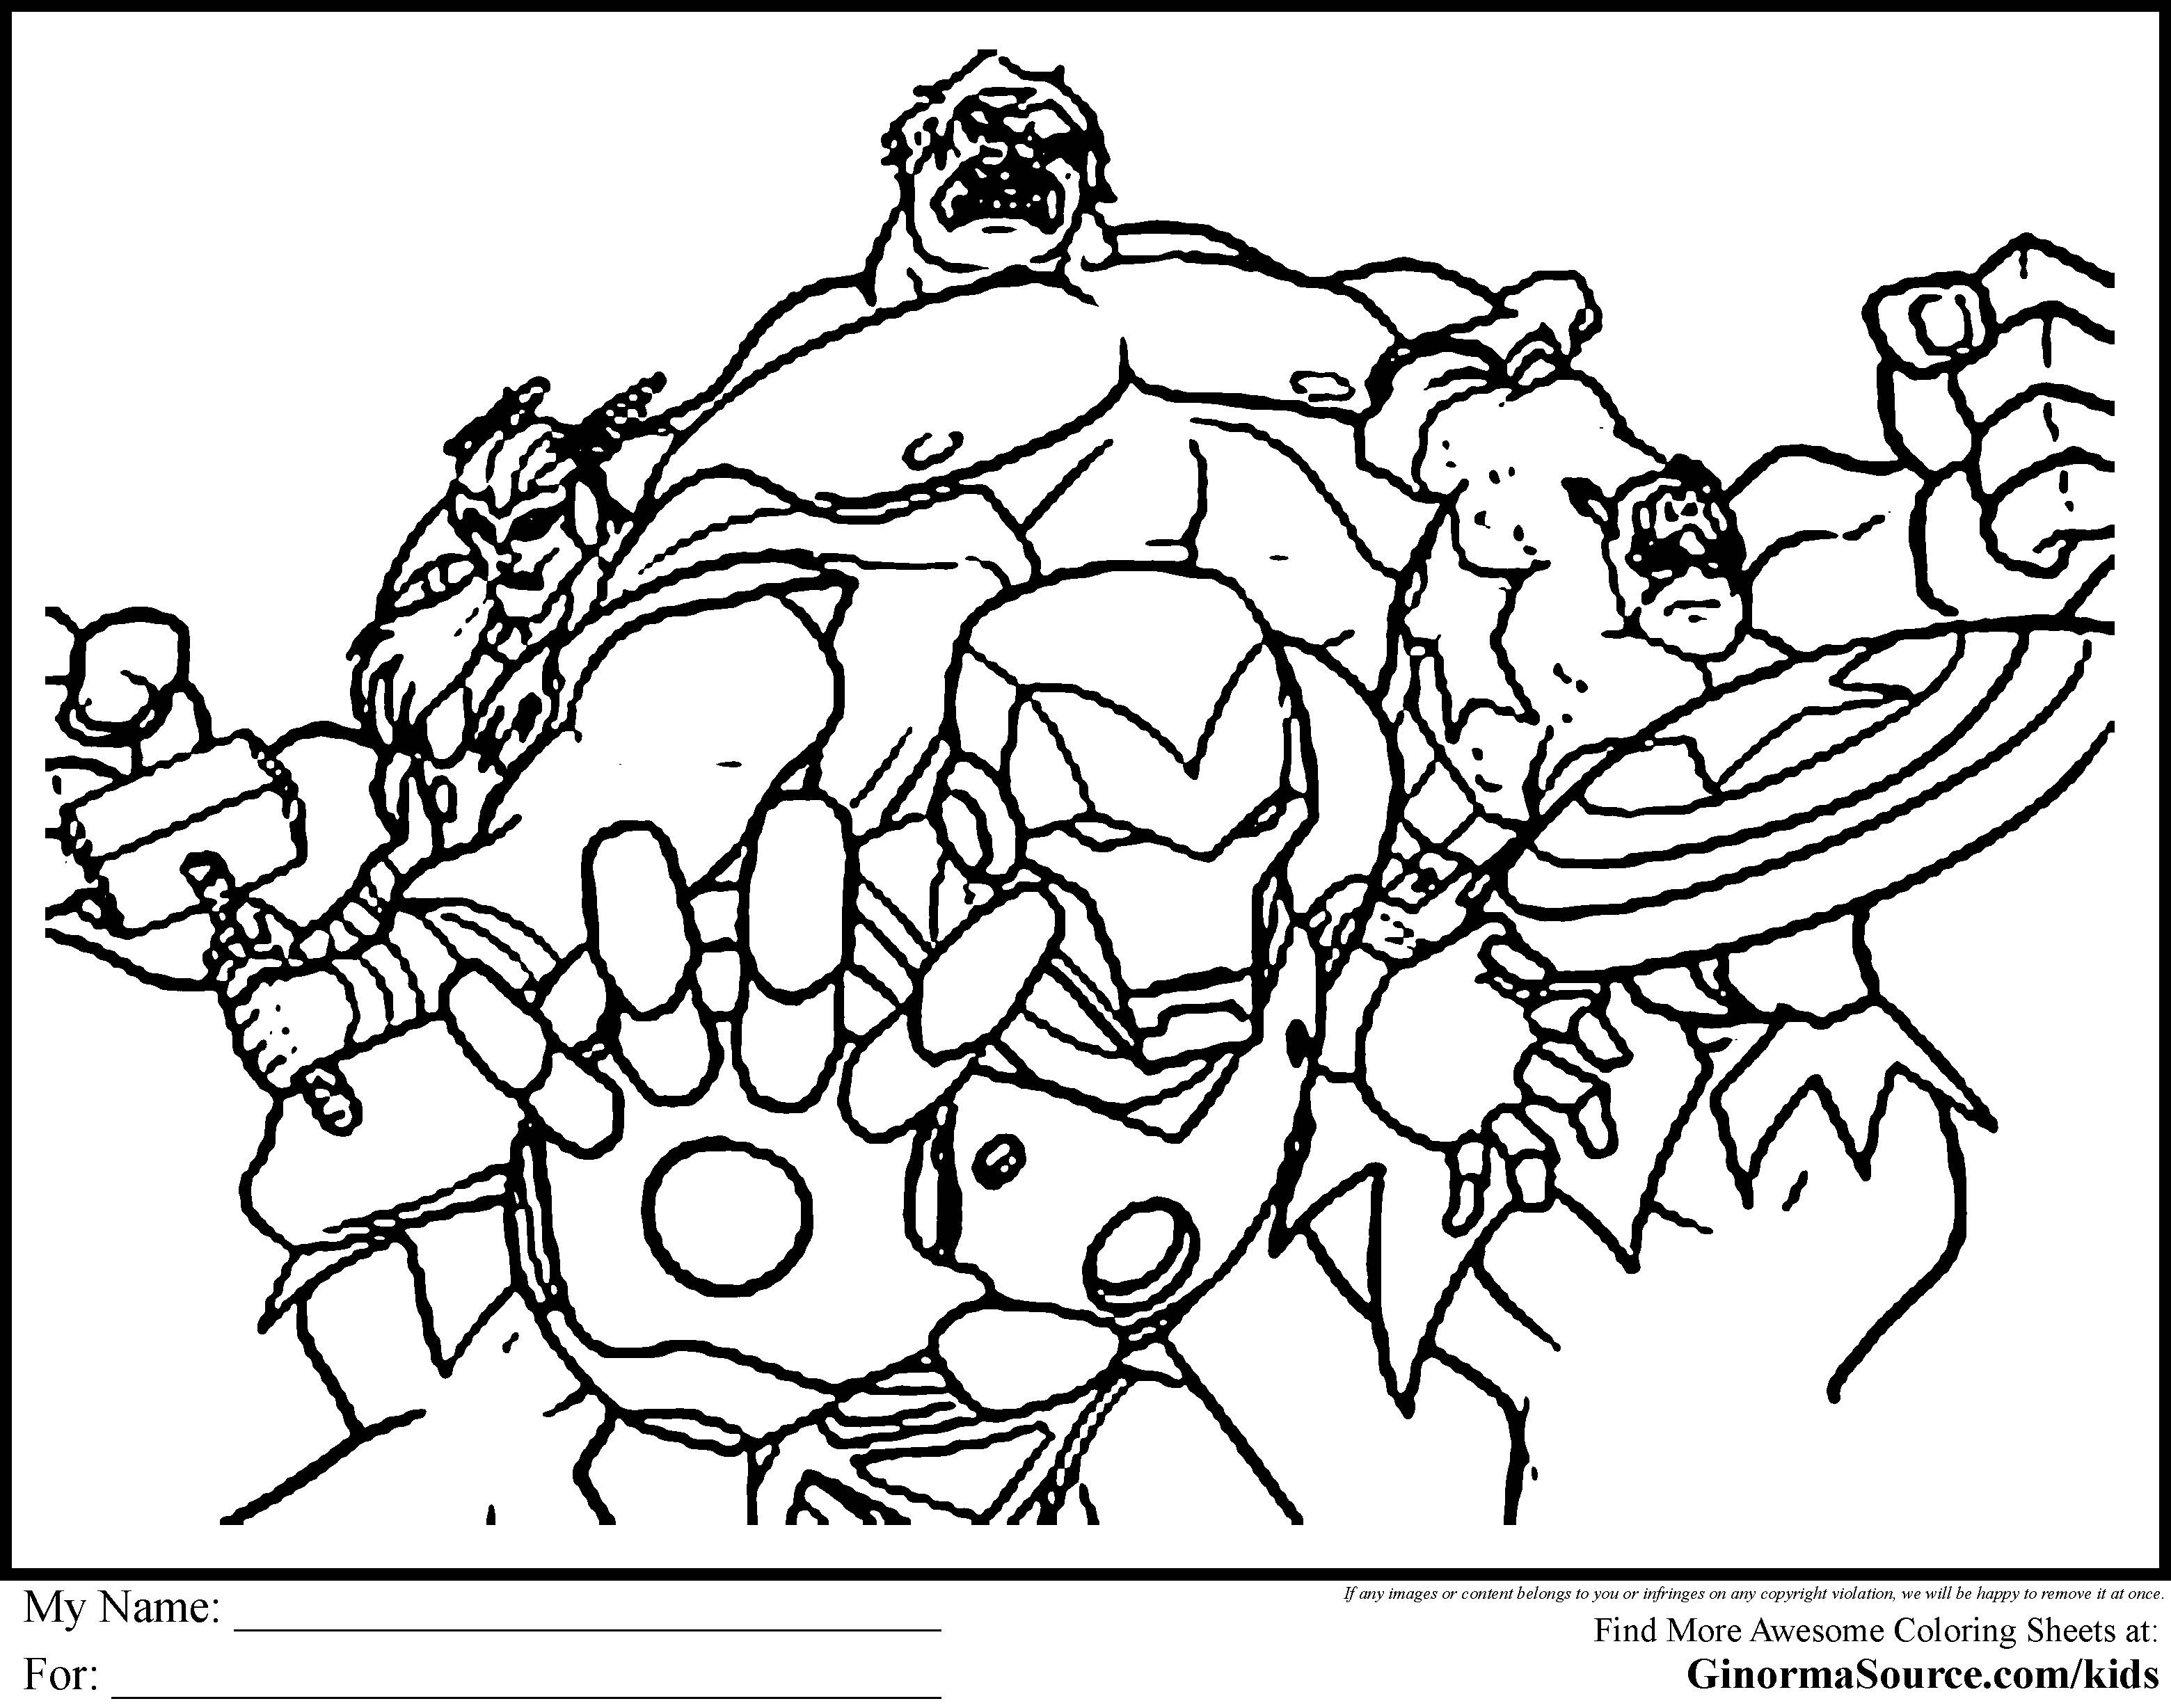 kitten coloring pages - avengers coloring pages to print